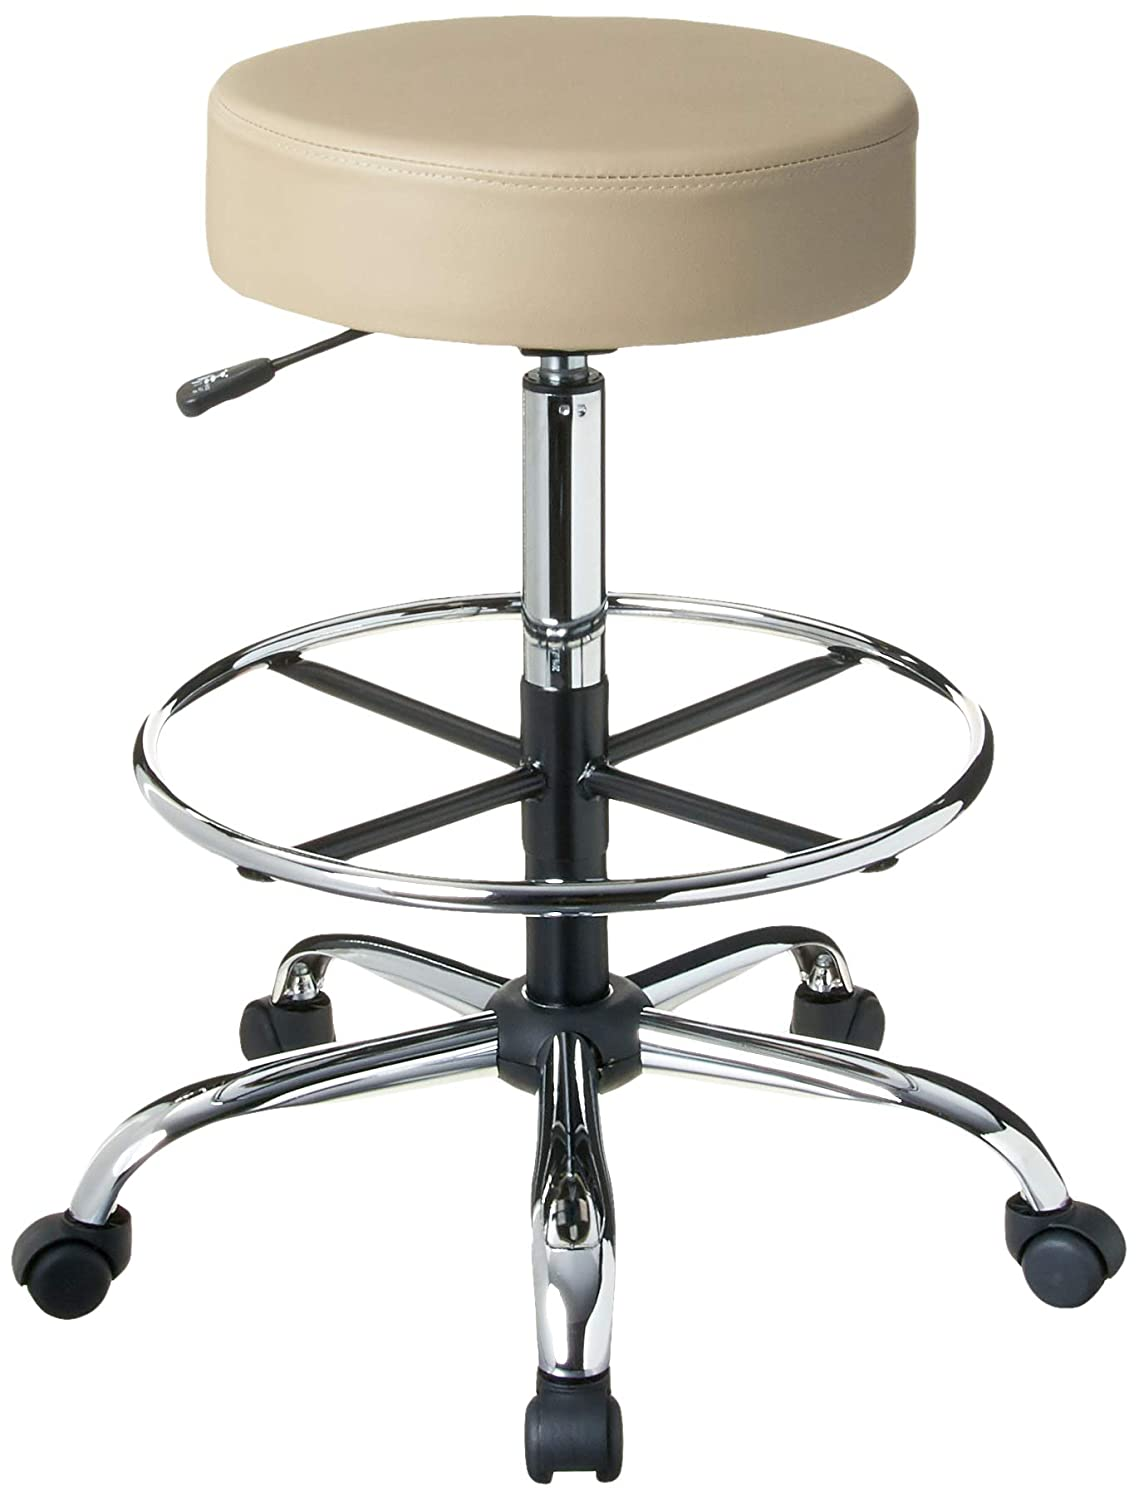 B004I3XV9M Boss Office Products Be Well Medical Spa Drafting Sool in Beige 612zk1hvU4L